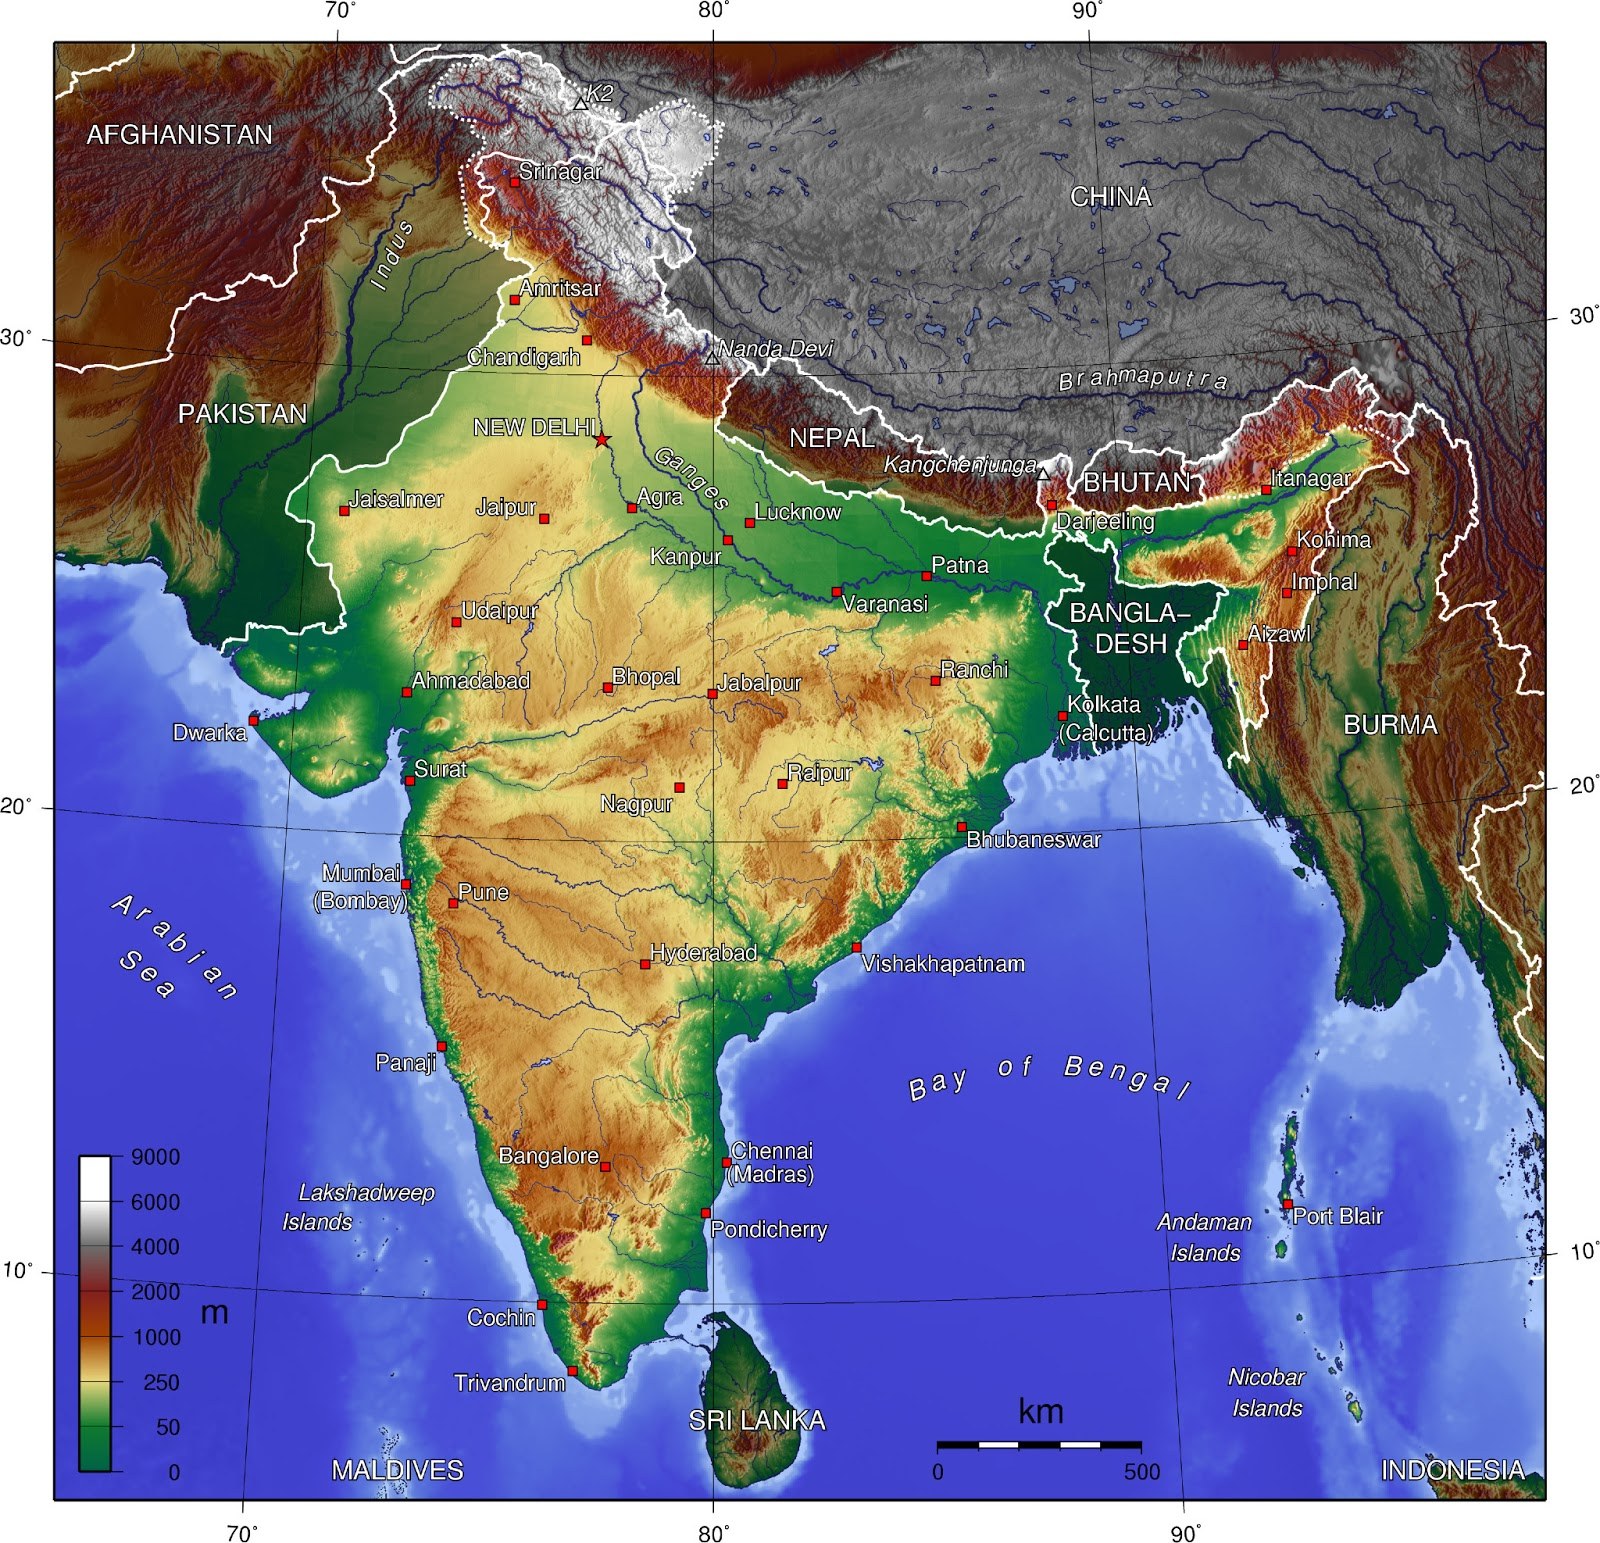 Marco carnovale map of india physical and political map of india physical and political gumiabroncs Images